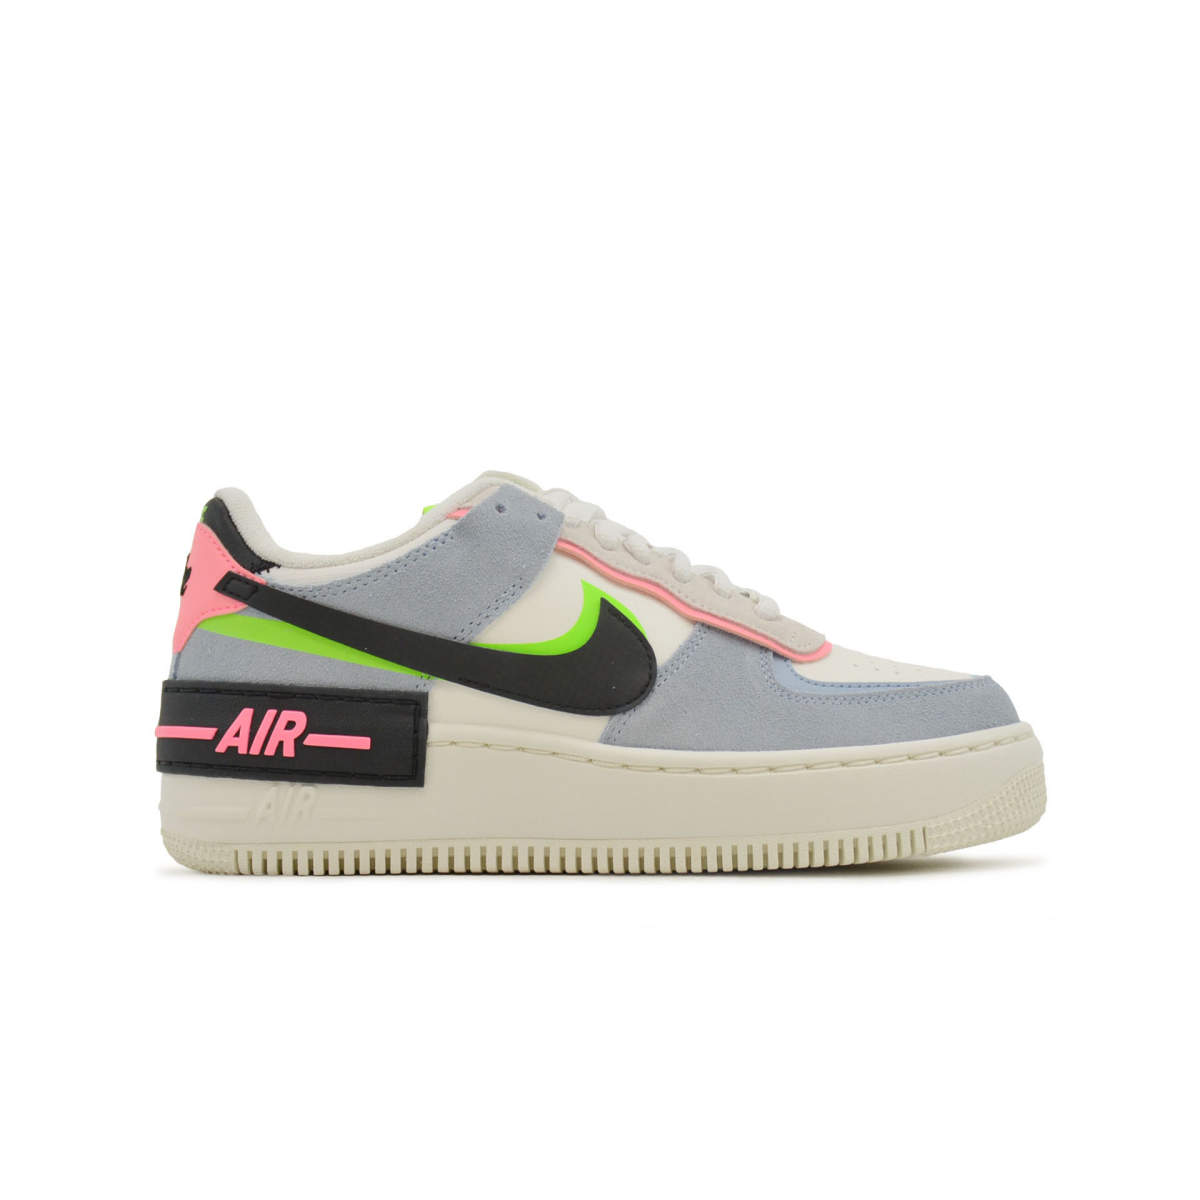 Wmns air force 1 shadow sunset pulse